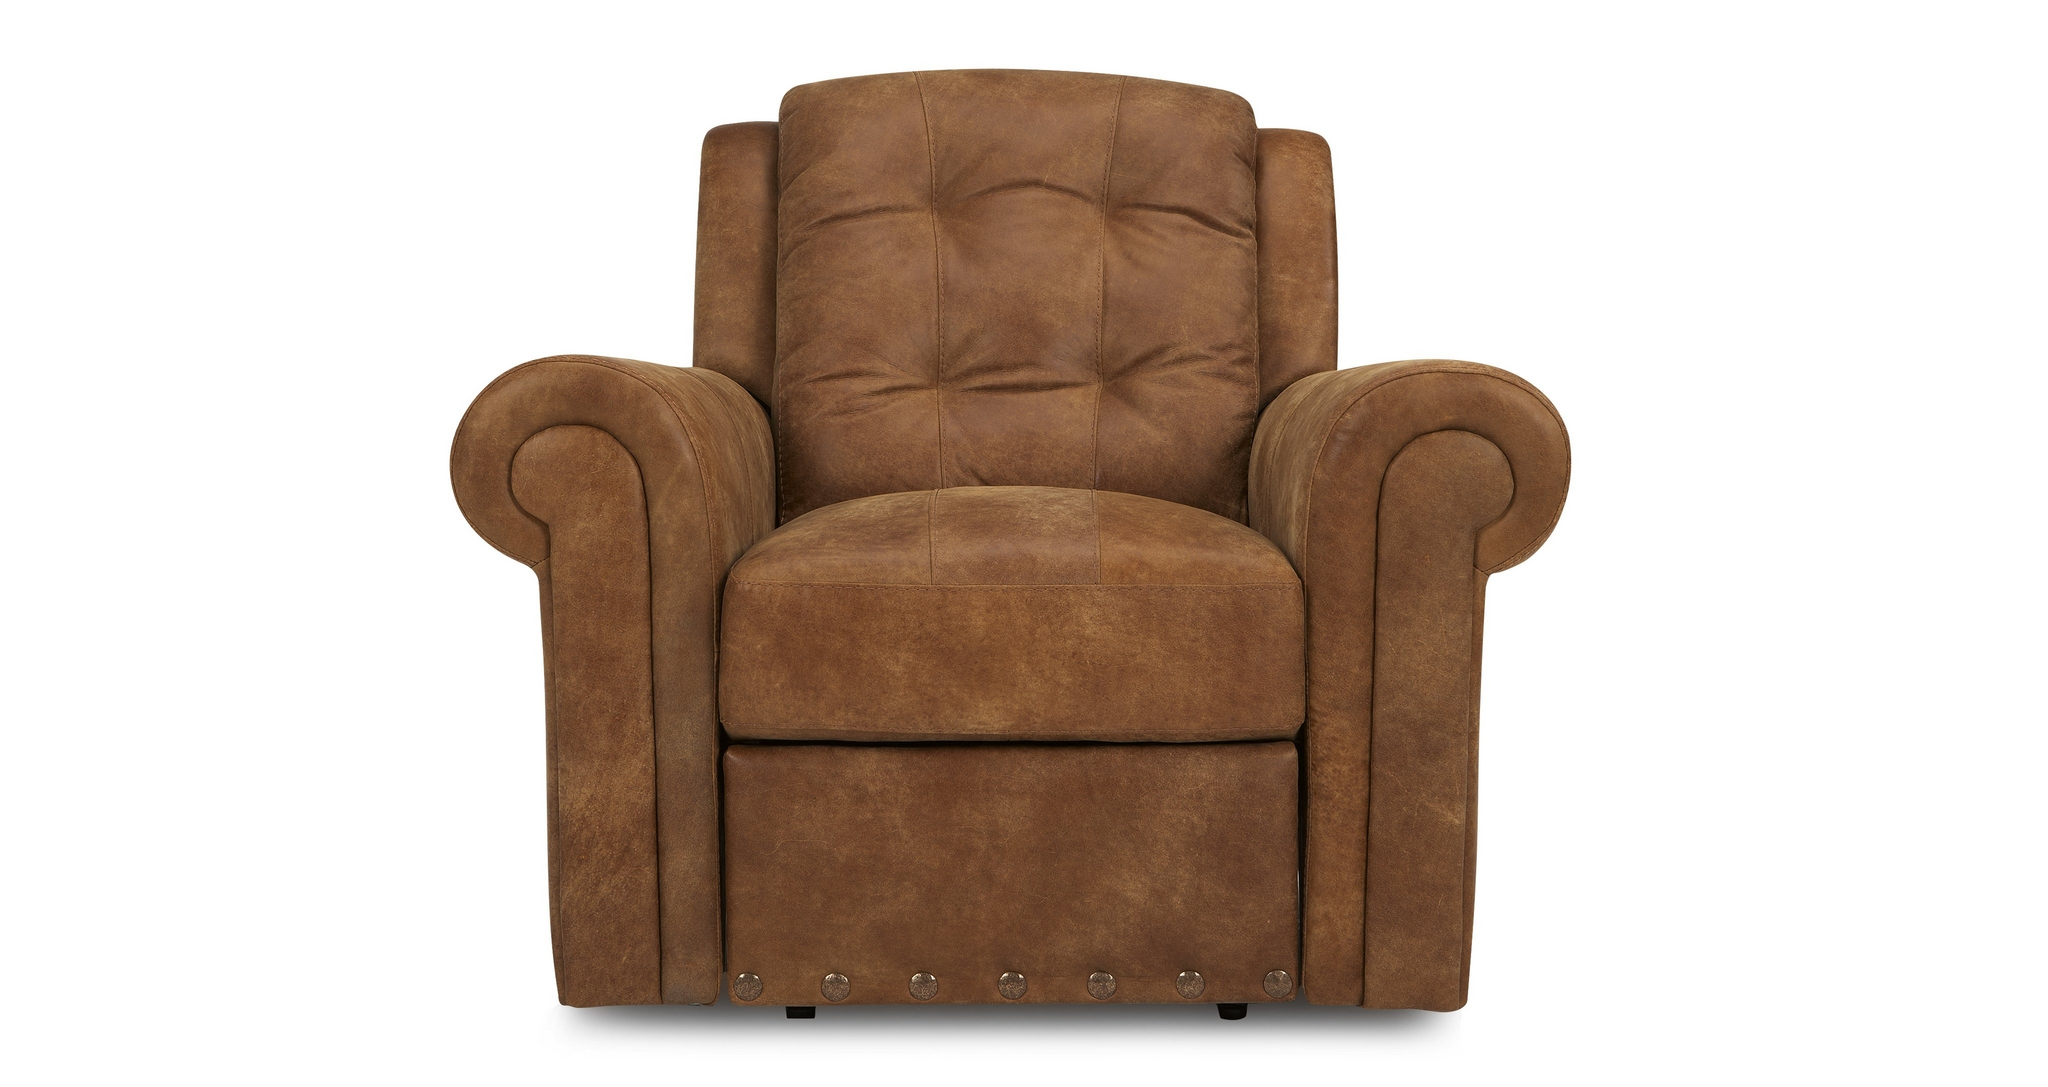 DFS MAJESTY TAN RANCH ARM CHAIR MANUAL RECLINER LEATHER ...